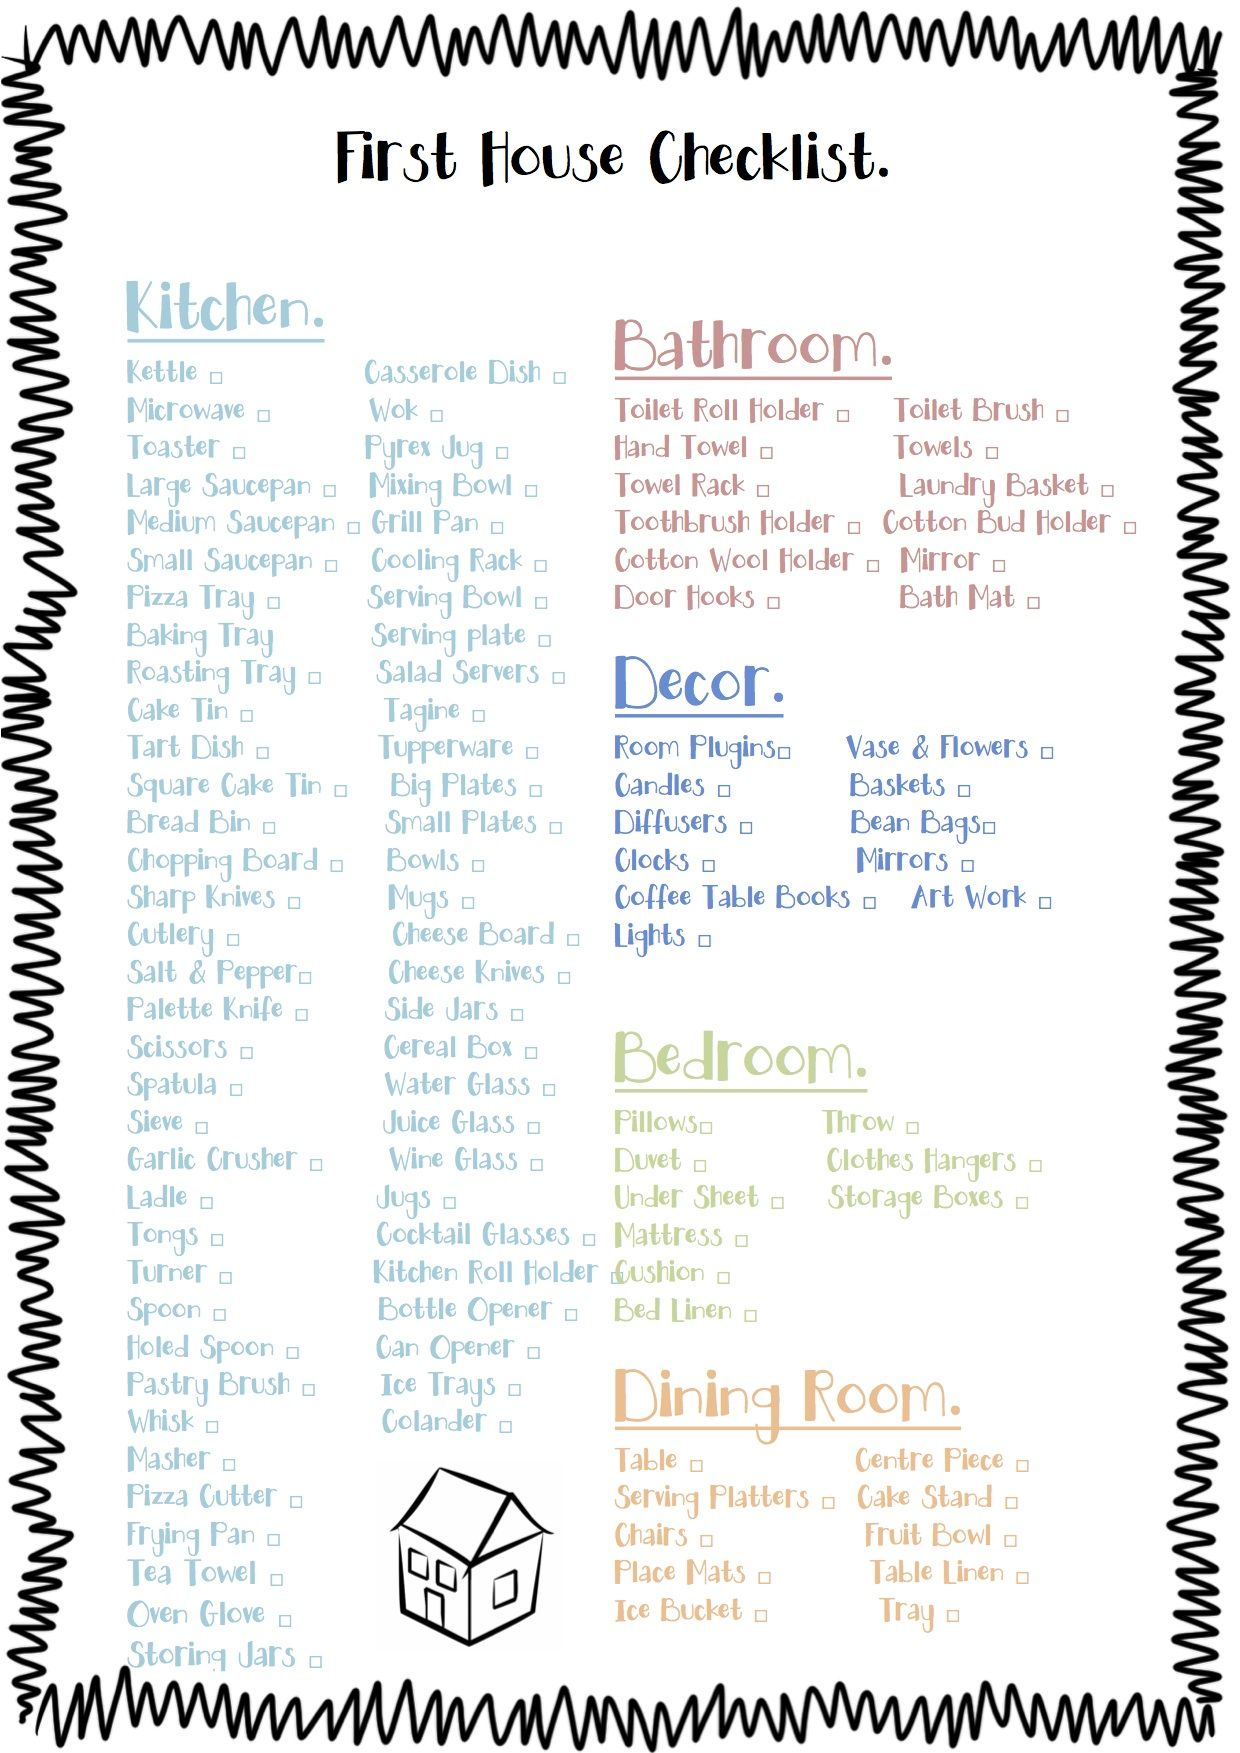 e1ab00c91 Free Printable Check List for the essentials to buy for a first house  (minus the obvious)  D